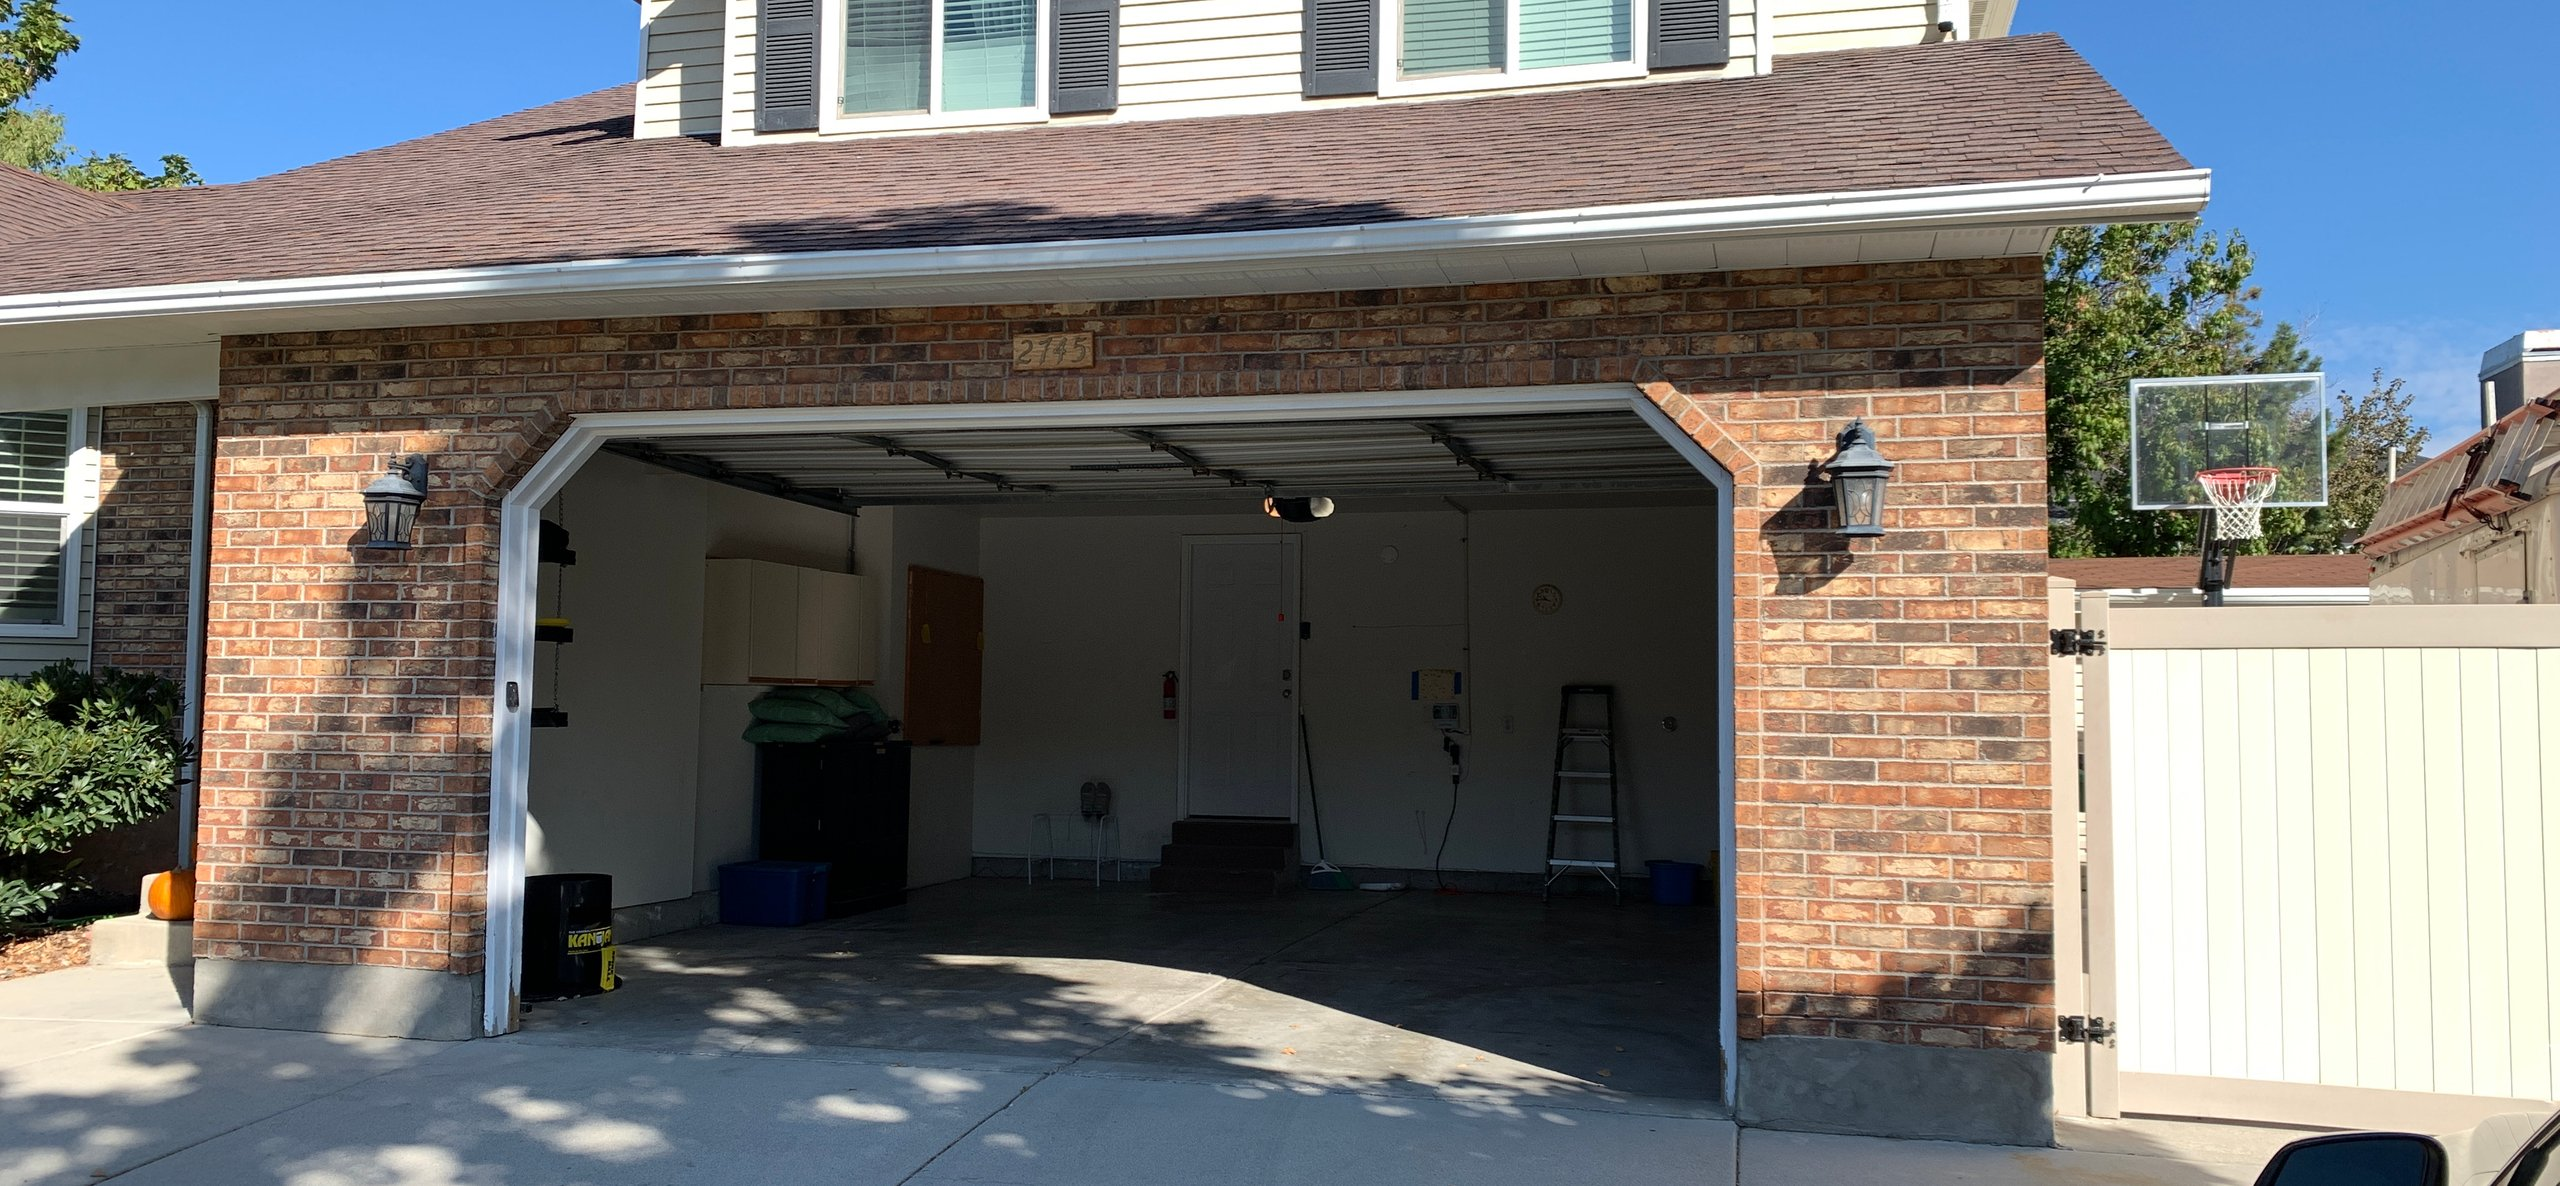 18x18 Garage self storage unit